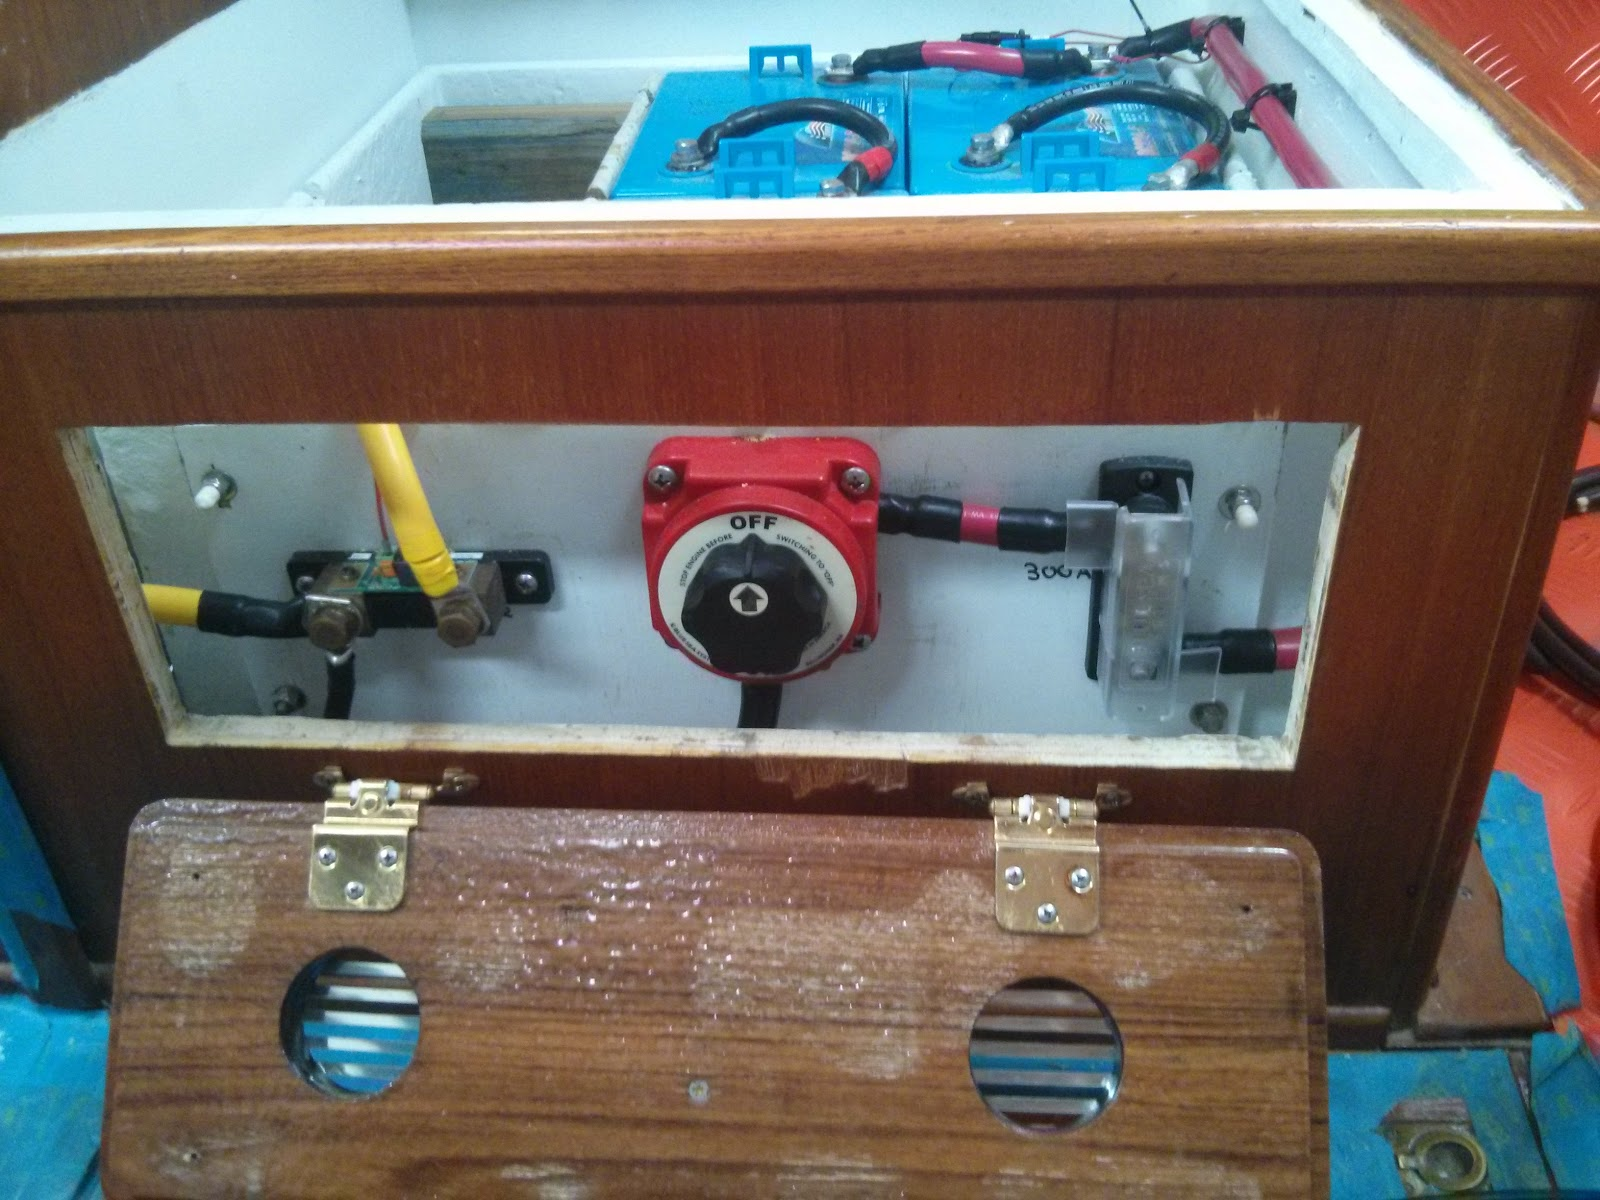 Sv Pilgrim Crimping Lugs Onto Large Gauge Electrical Wires House Wiring Wire Runs At Battery Bank